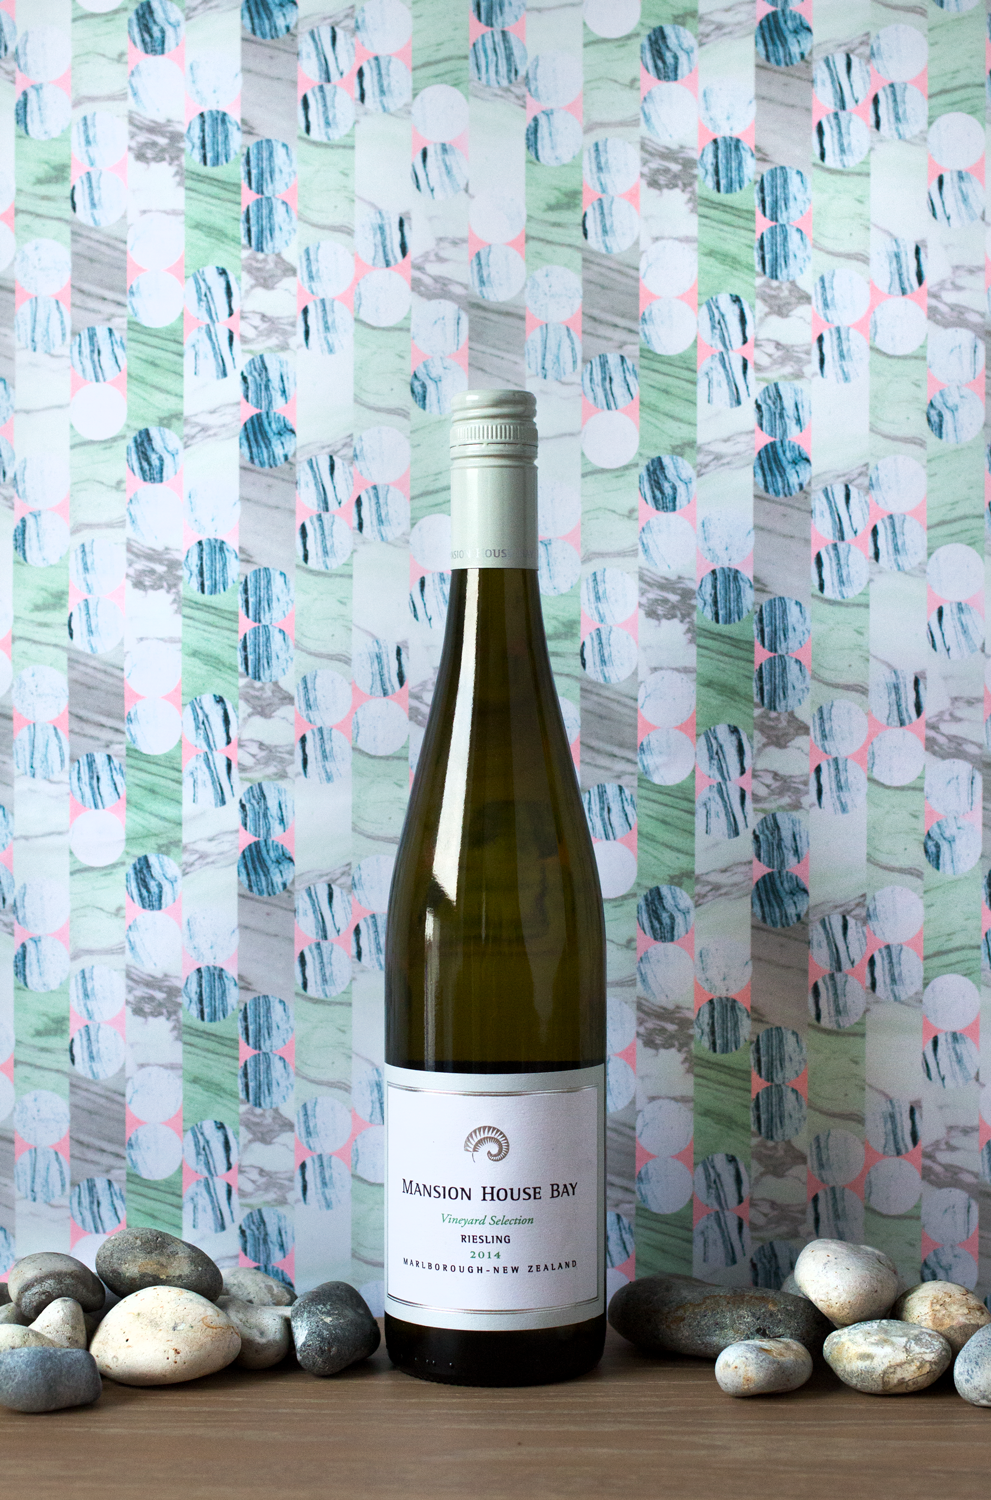 Wine Review of Mansion House Bay Riesling 2015 from Marlborough, New Zealand by Bottle Bitches.png